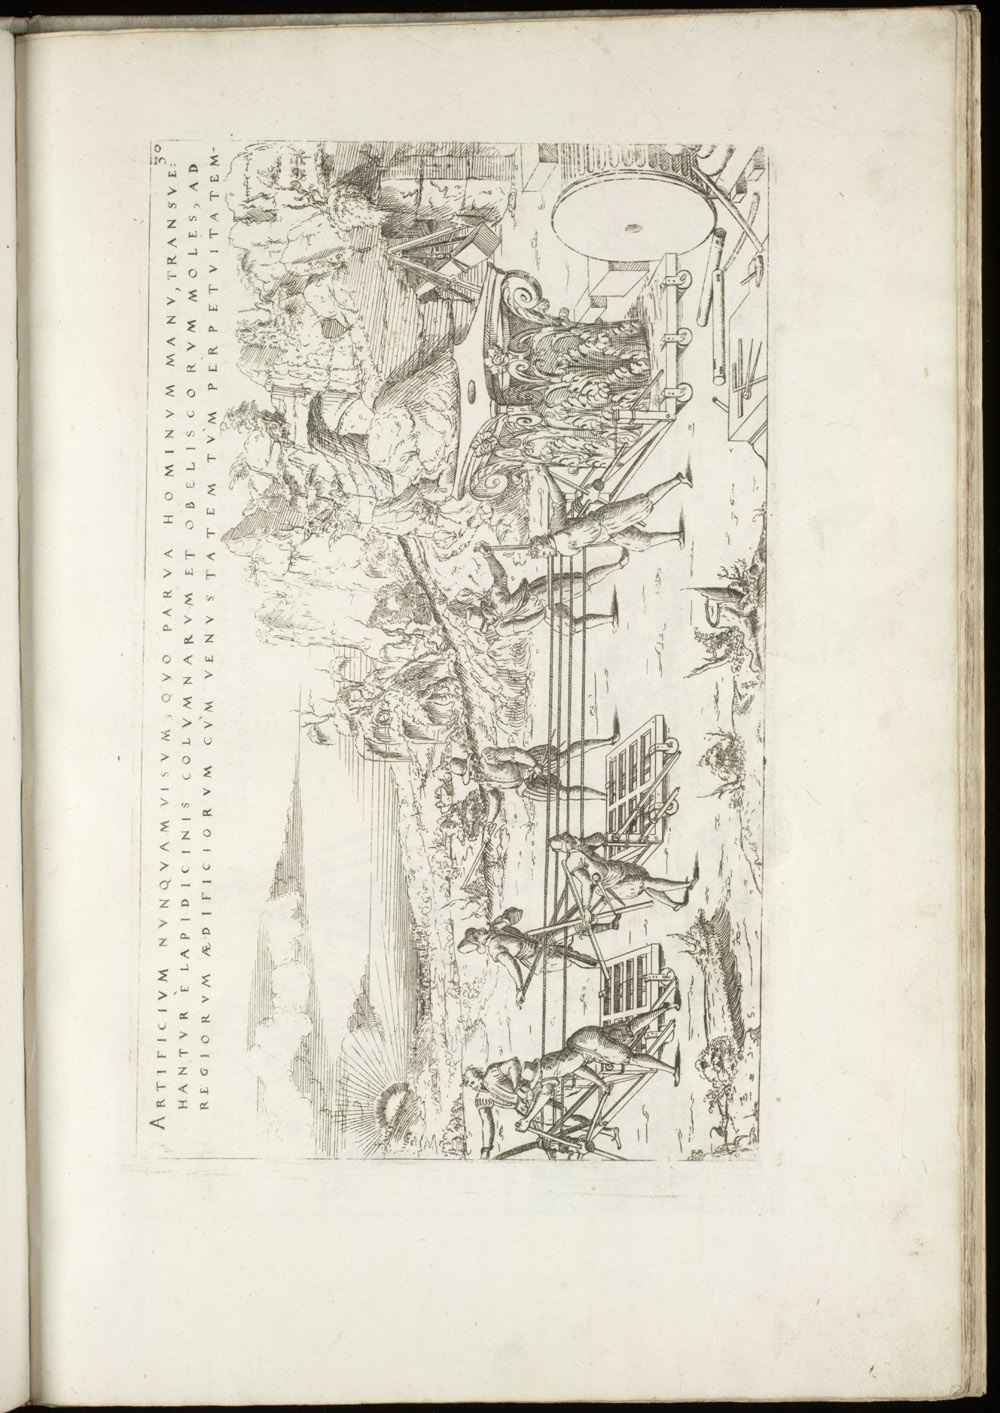 Plate 30 [Hauling heavy objects],  Image number:SIL4-2-93a